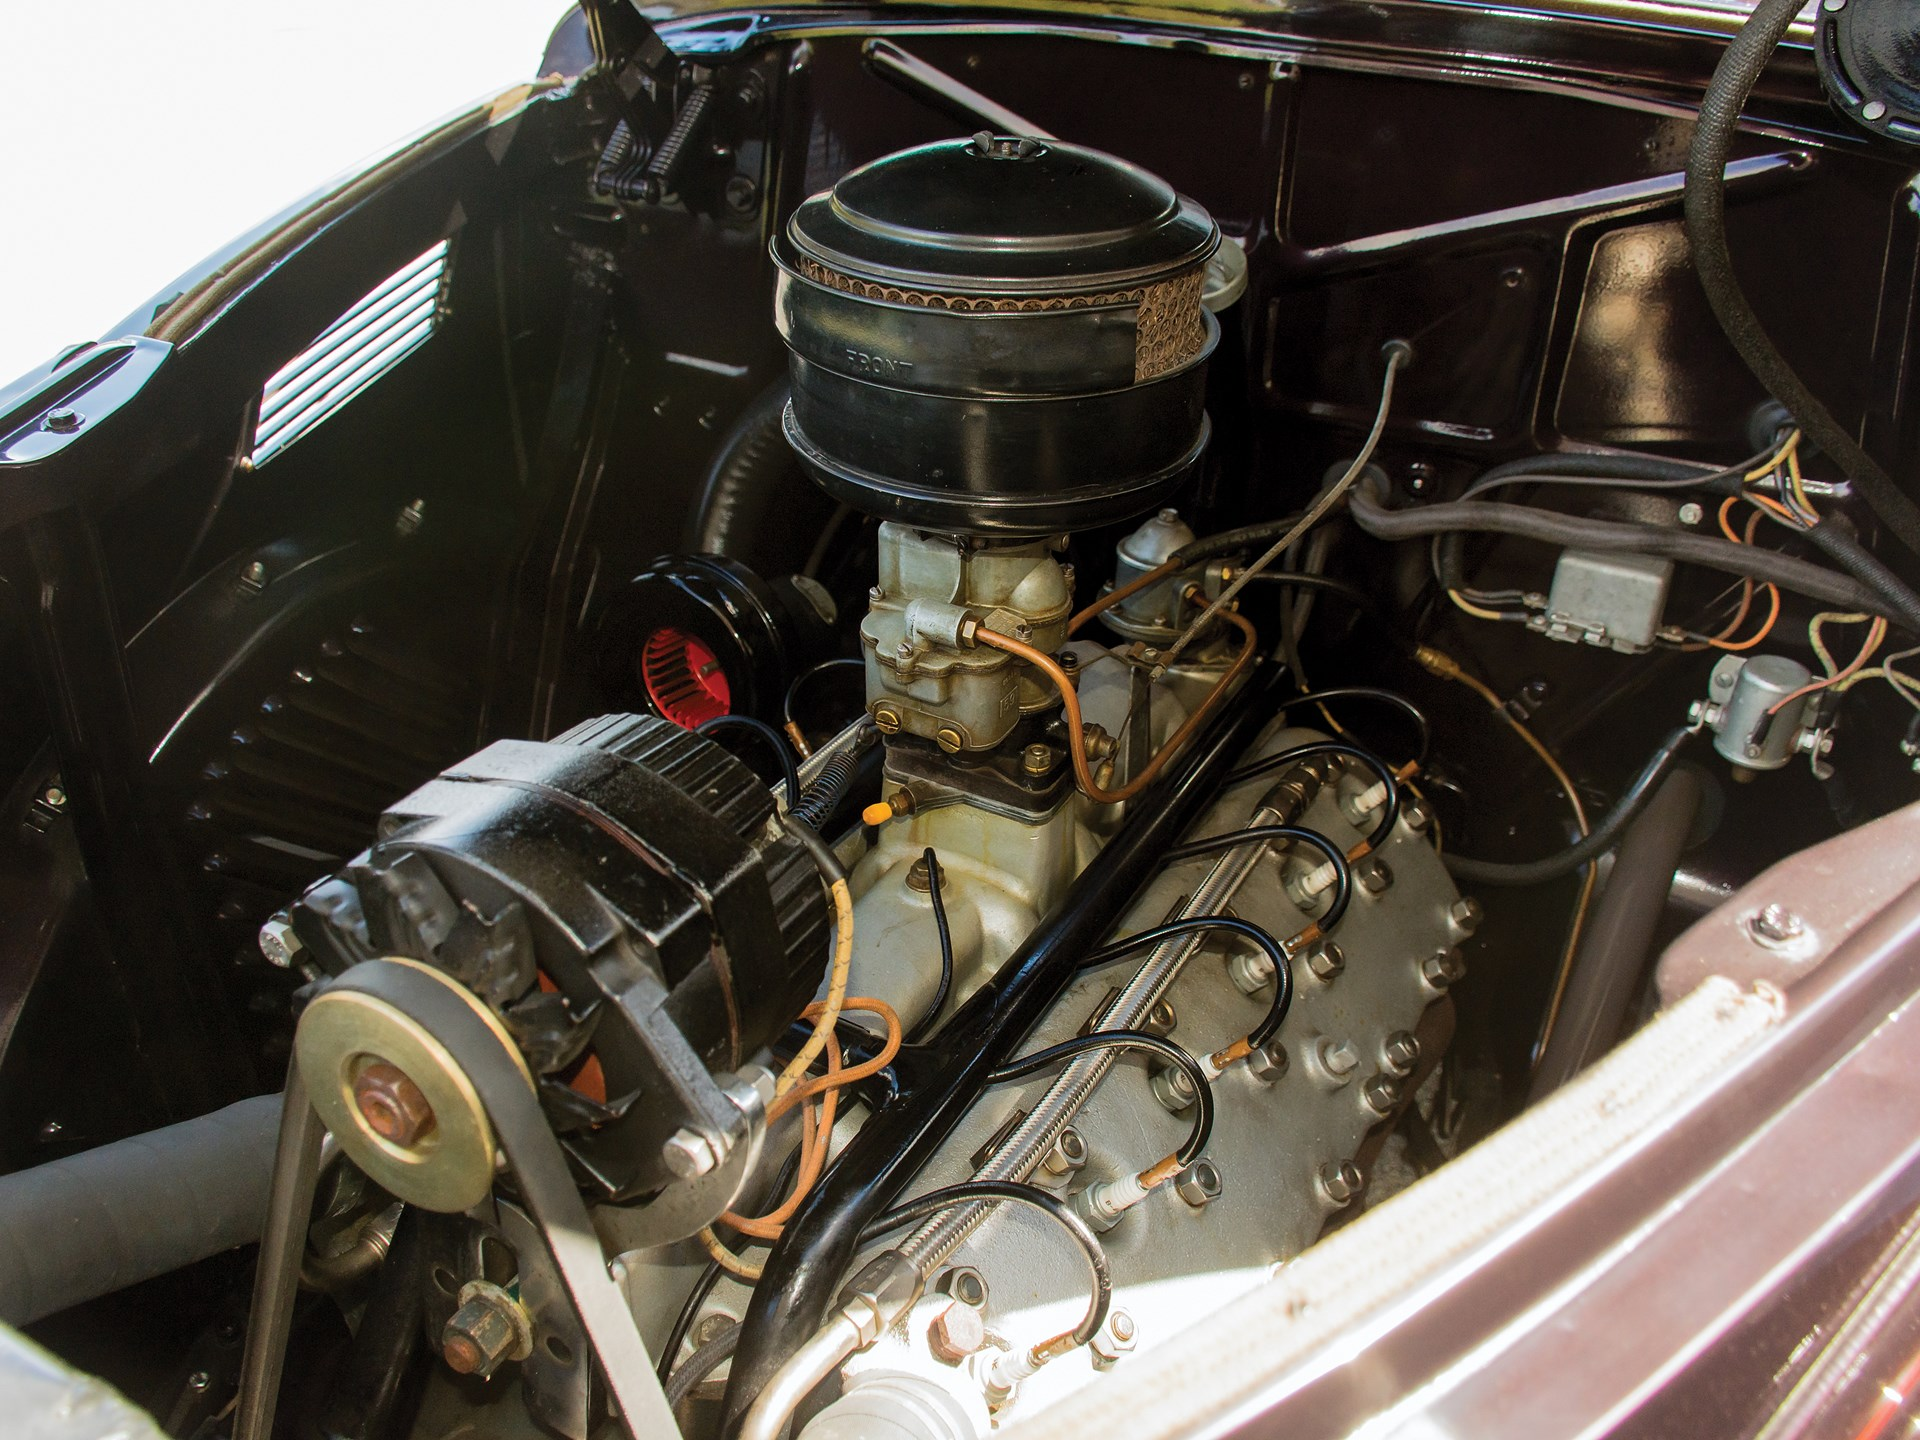 1937 Lincoln Zephyr engine